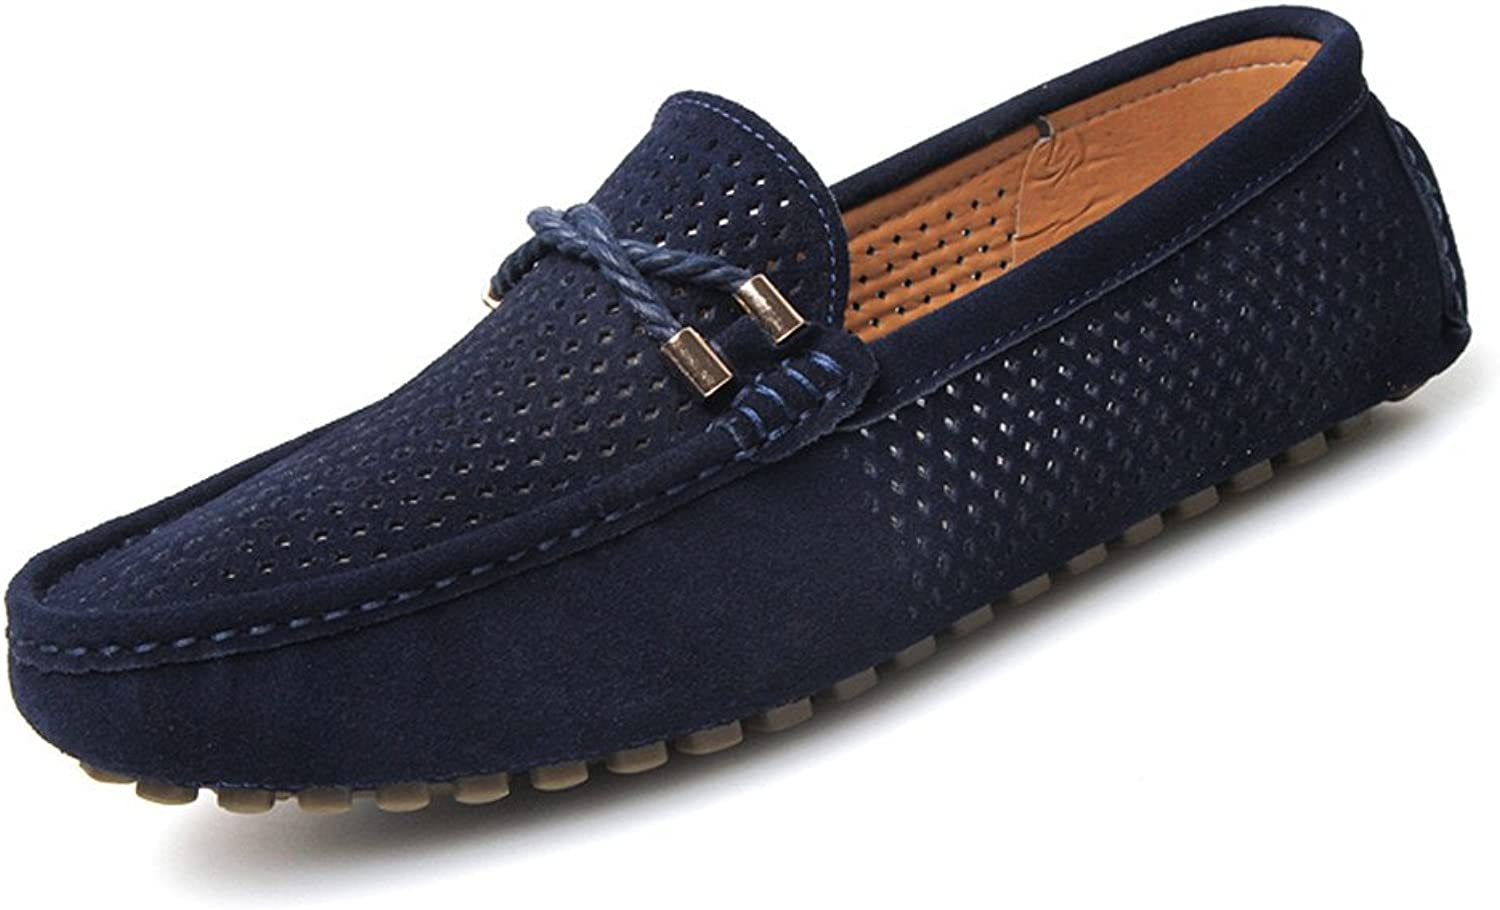 Summer Men shoes Casual Breathable Mens Penny Loafers Suede Leather Slip On Boat shoes Men